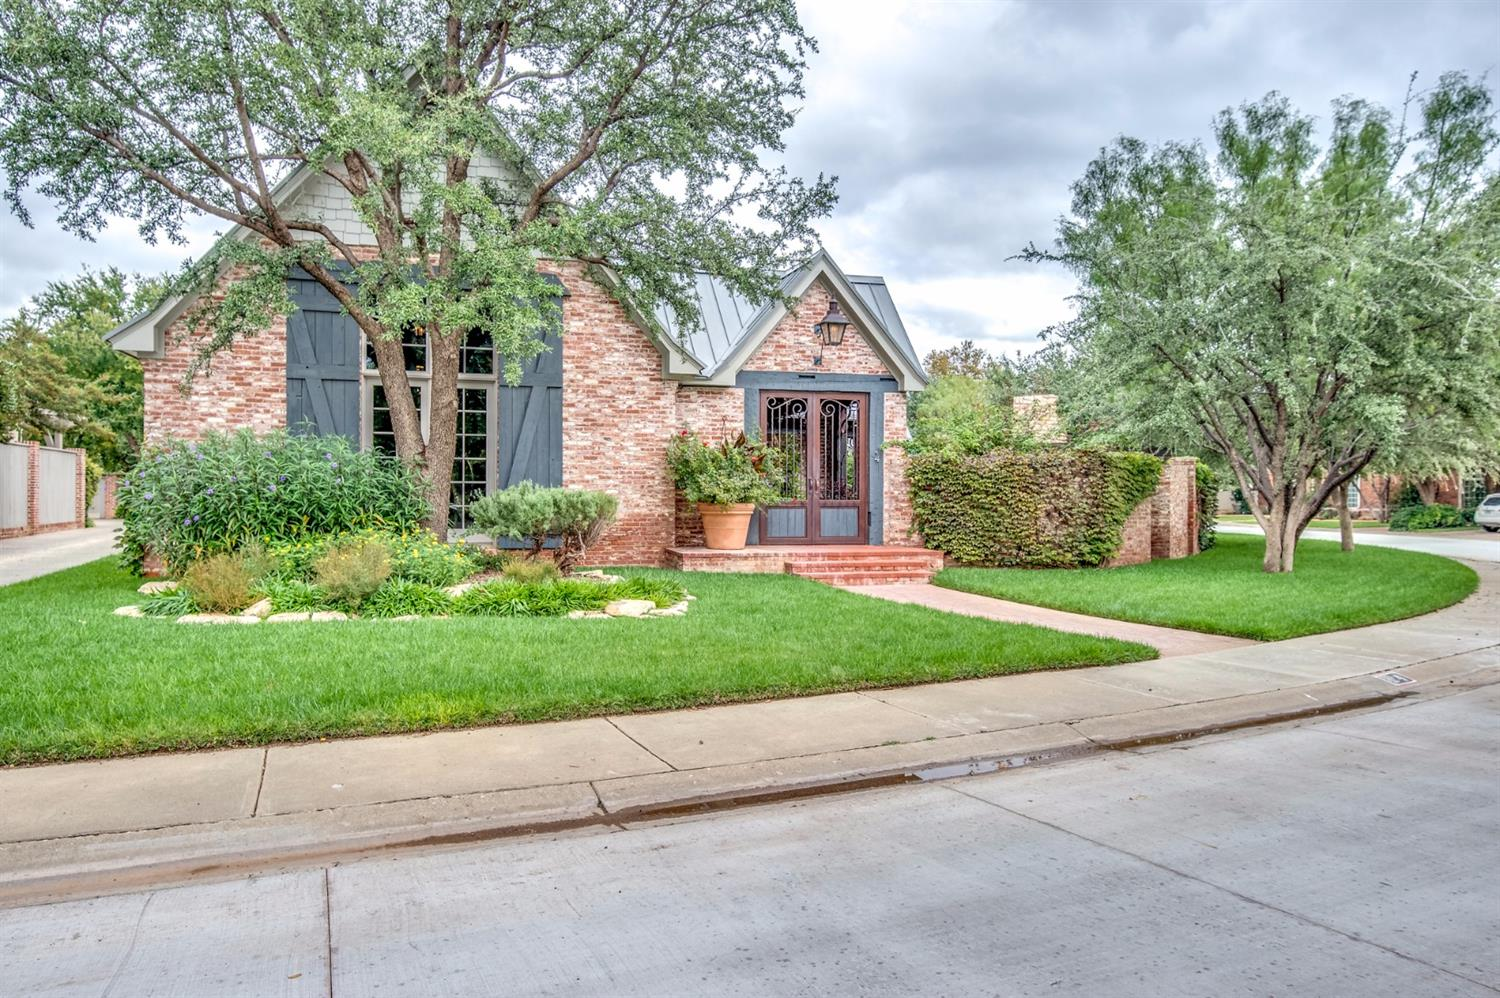 4809 19th Street, one of homes for sale in Lubbock